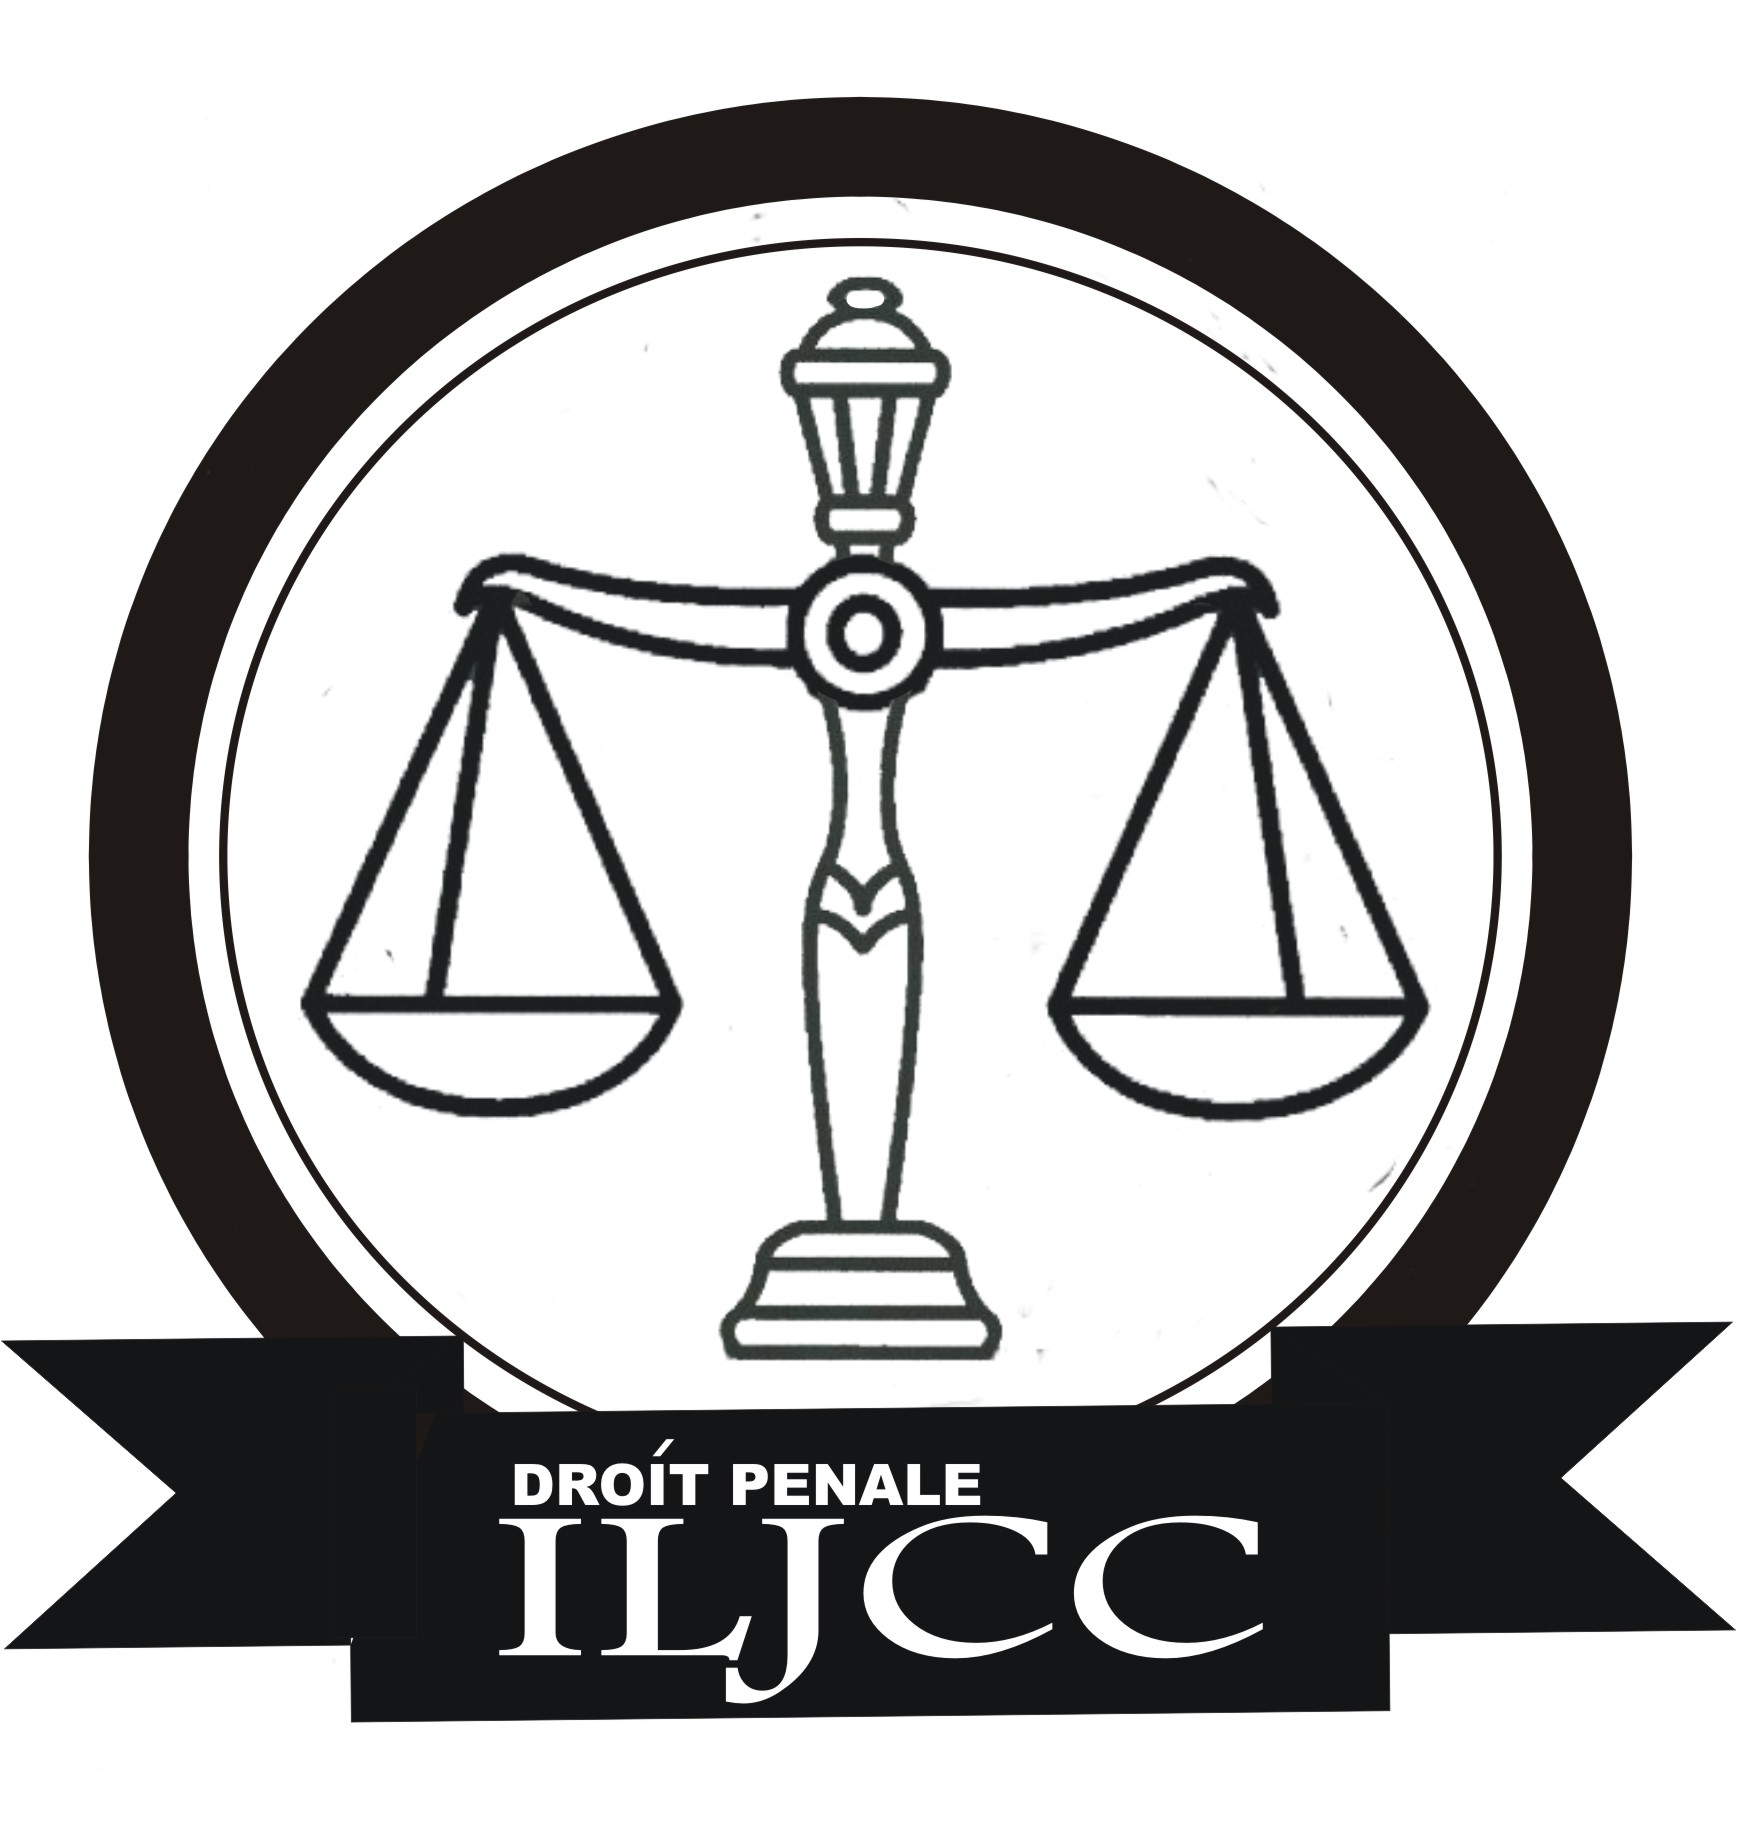 Call for Papers: Droit Penale: ILJCC; Vol 2 Issue 2: Submit by April 25